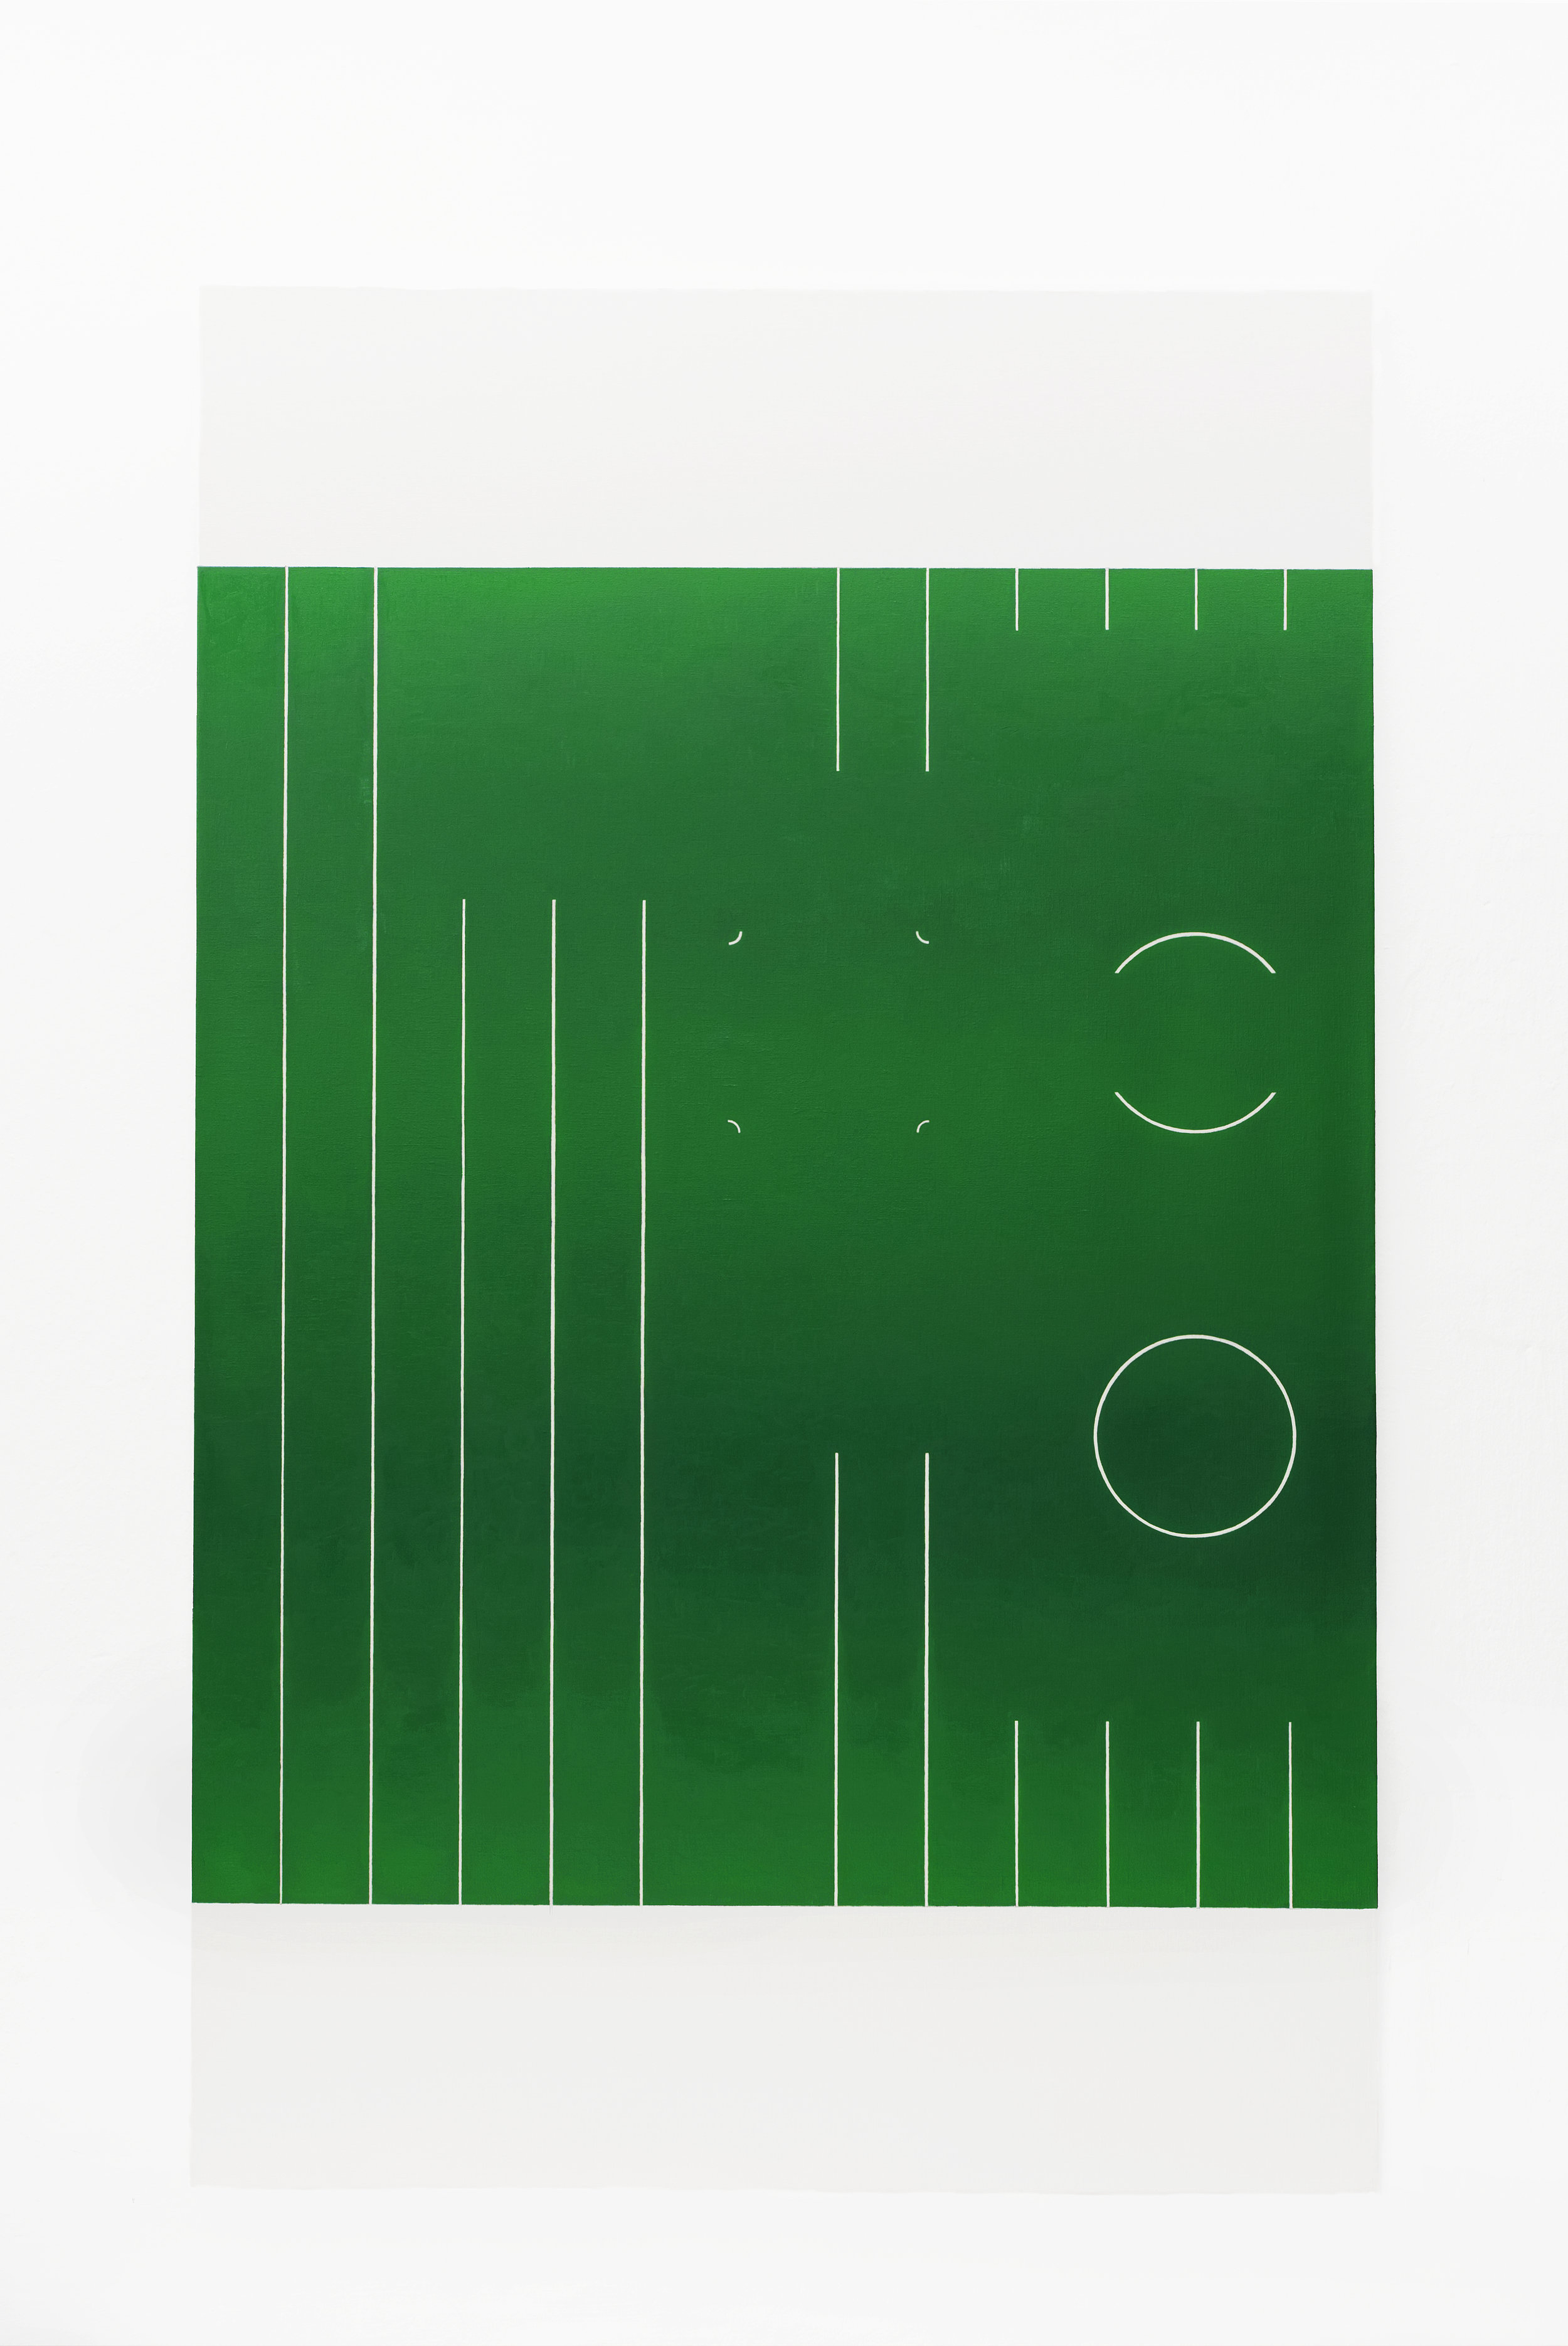 The Field_Green on white lines.jpg